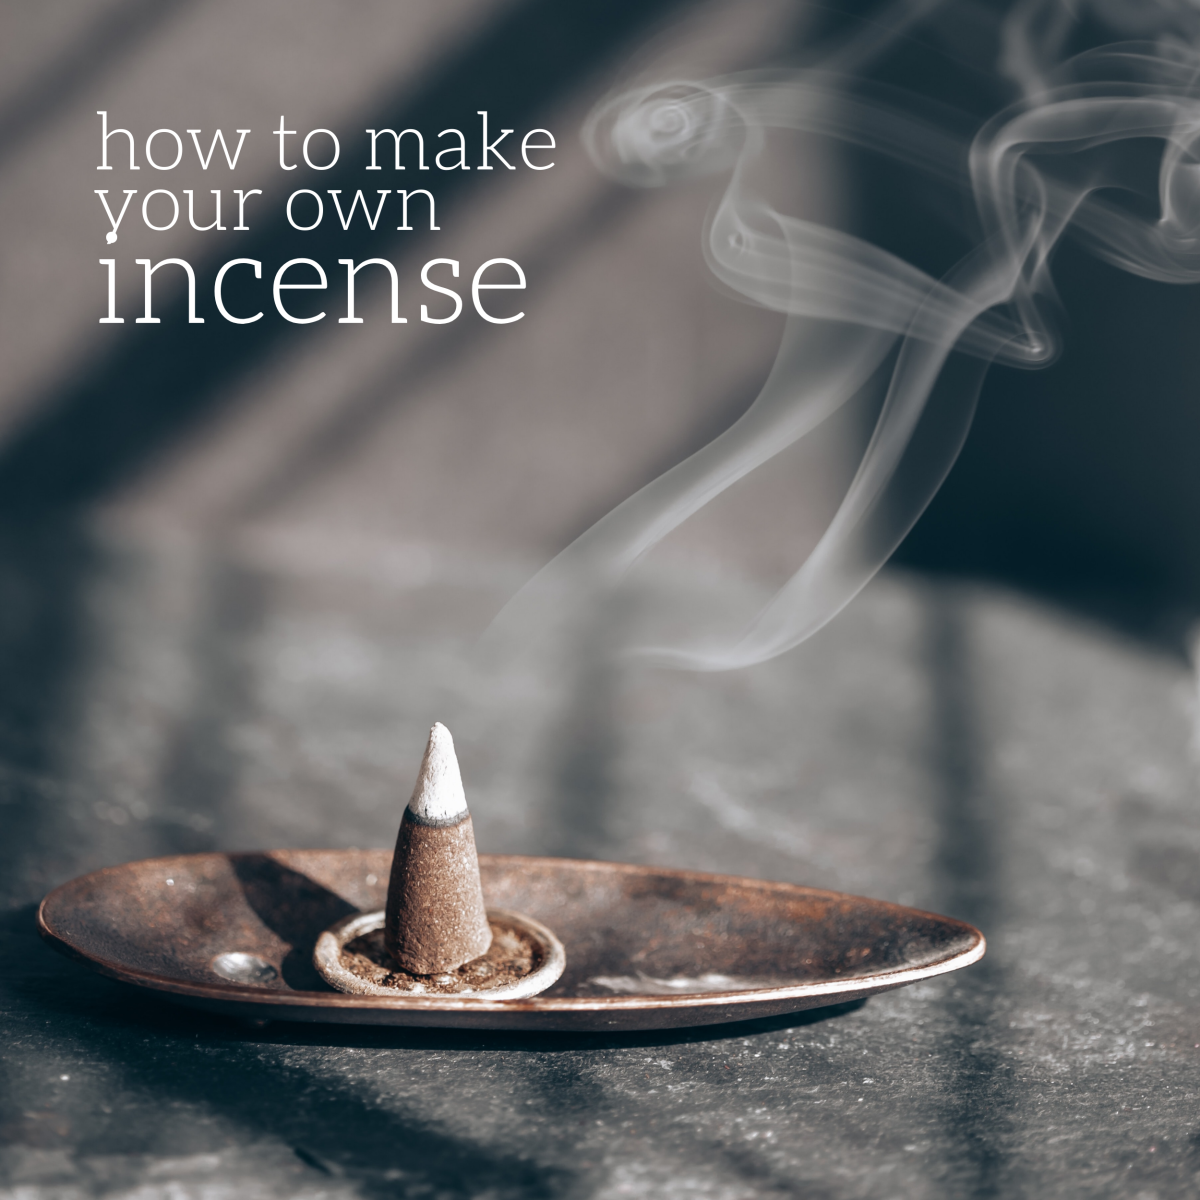 How to make your own incense (and 5 recipes to try!).